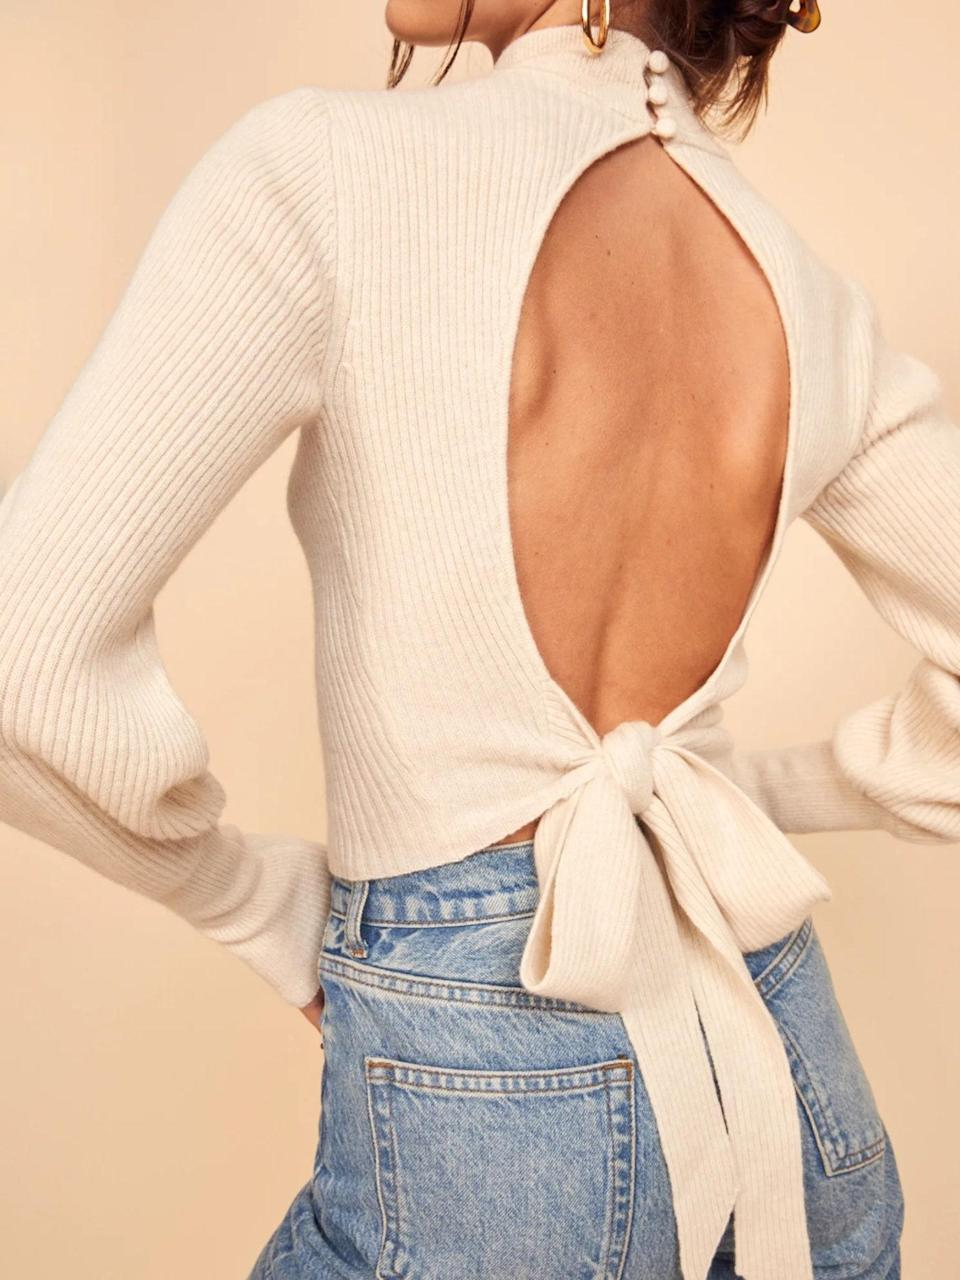 """With a mock neck and open back, this is the kind of sexy but low-key knit you can wear on so many date nights. $228, Reformation. <a href=""""https://www.thereformation.com/products/osteria-sweater"""" rel=""""nofollow noopener"""" target=""""_blank"""" data-ylk=""""slk:Get it now!"""" class=""""link rapid-noclick-resp"""">Get it now!</a>"""